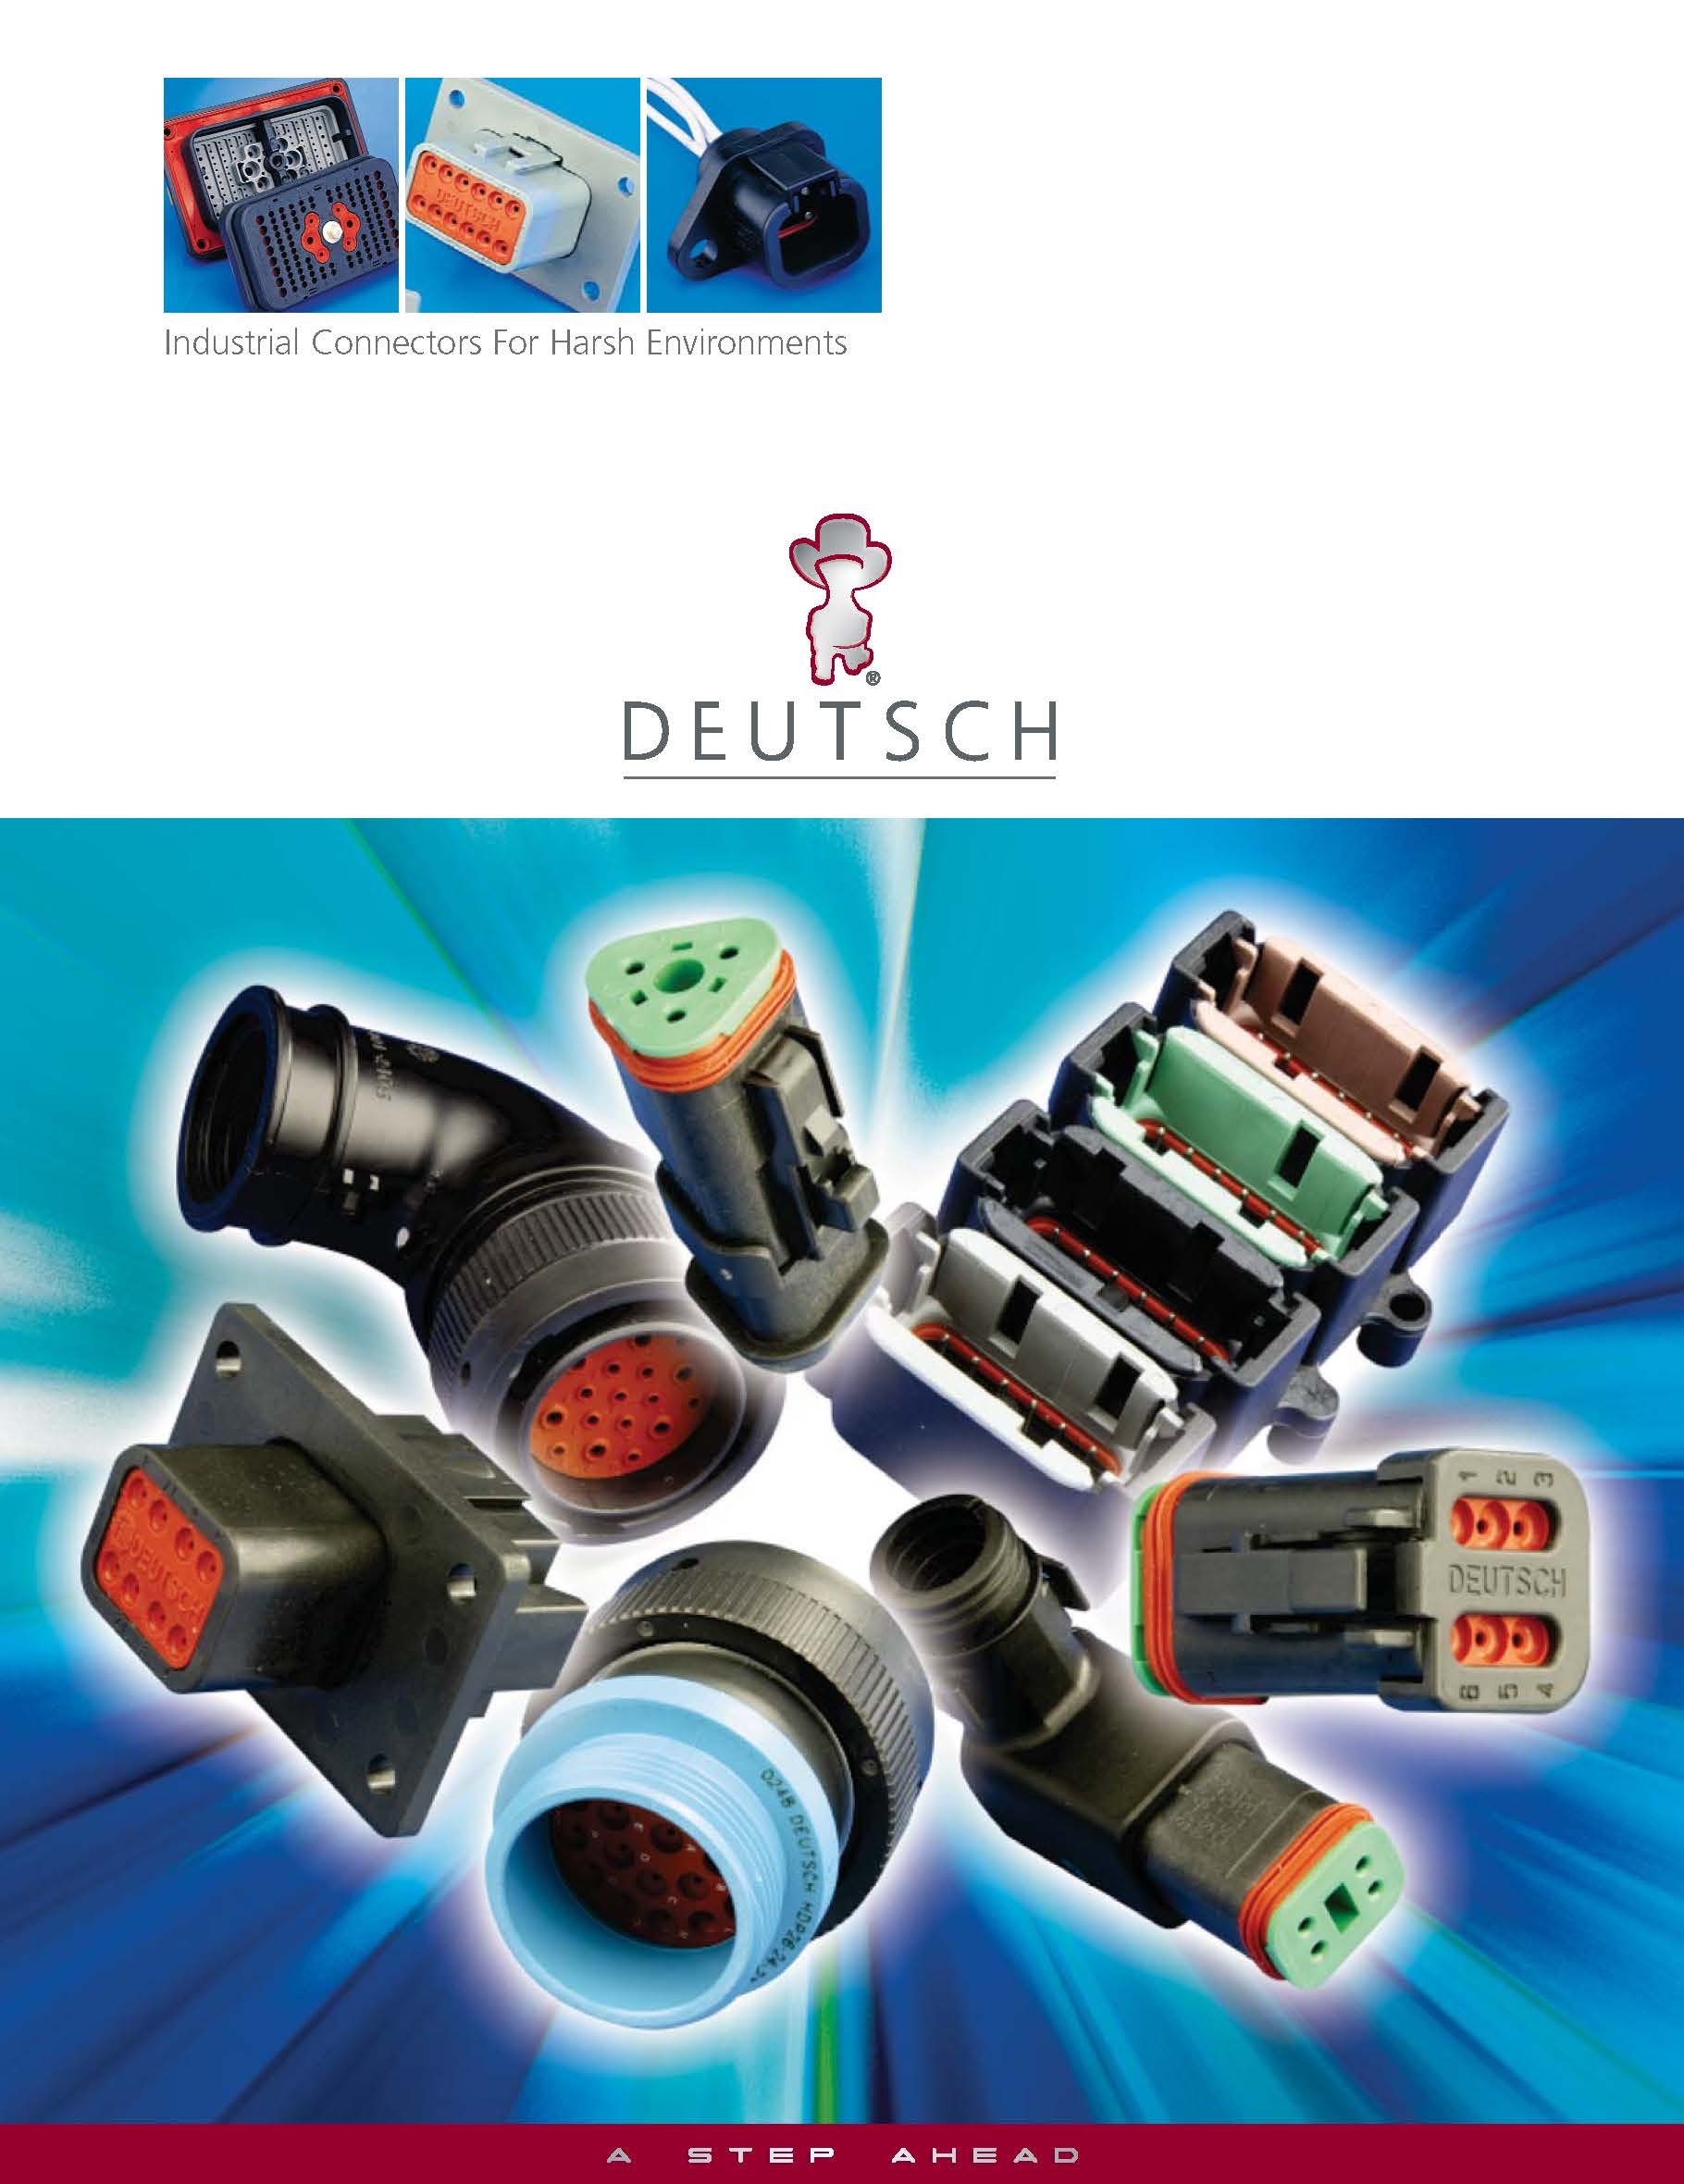 Deutsch DT Connectors - Waterproof - TheElectricalDepot.com Great Prices